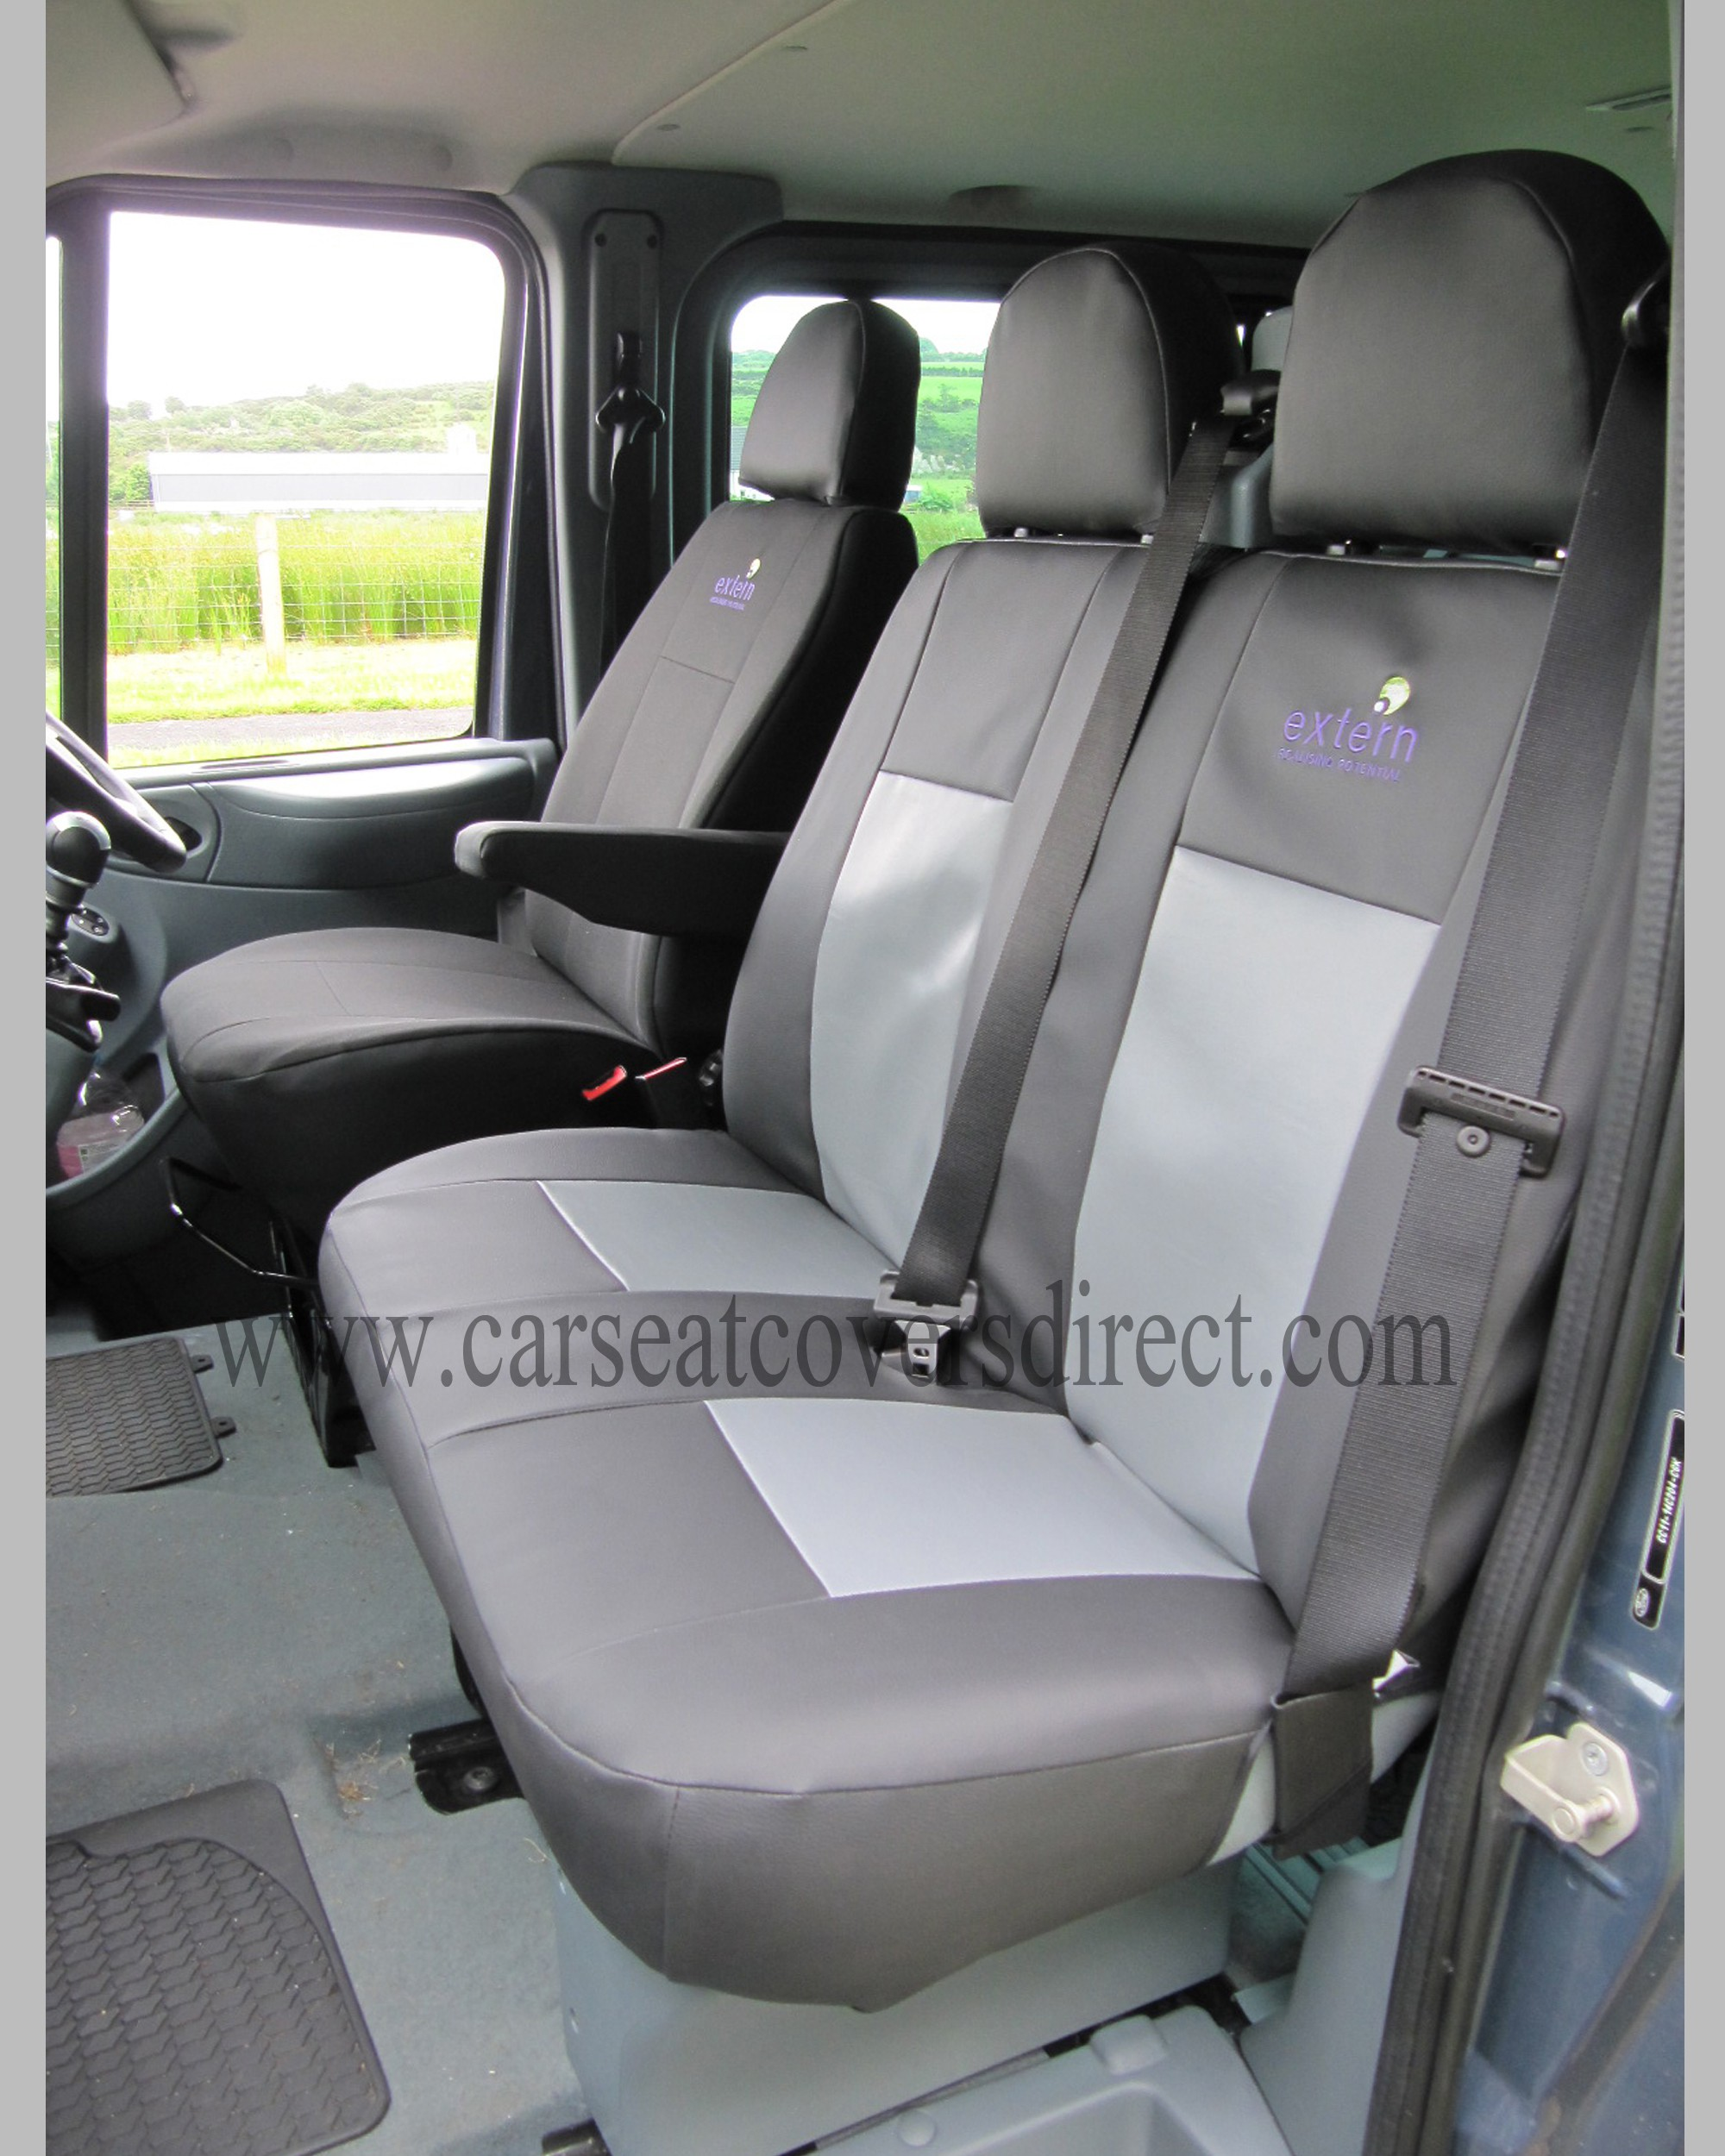 FORD TRANSIT TOURNEO van seat covers 1st GEN